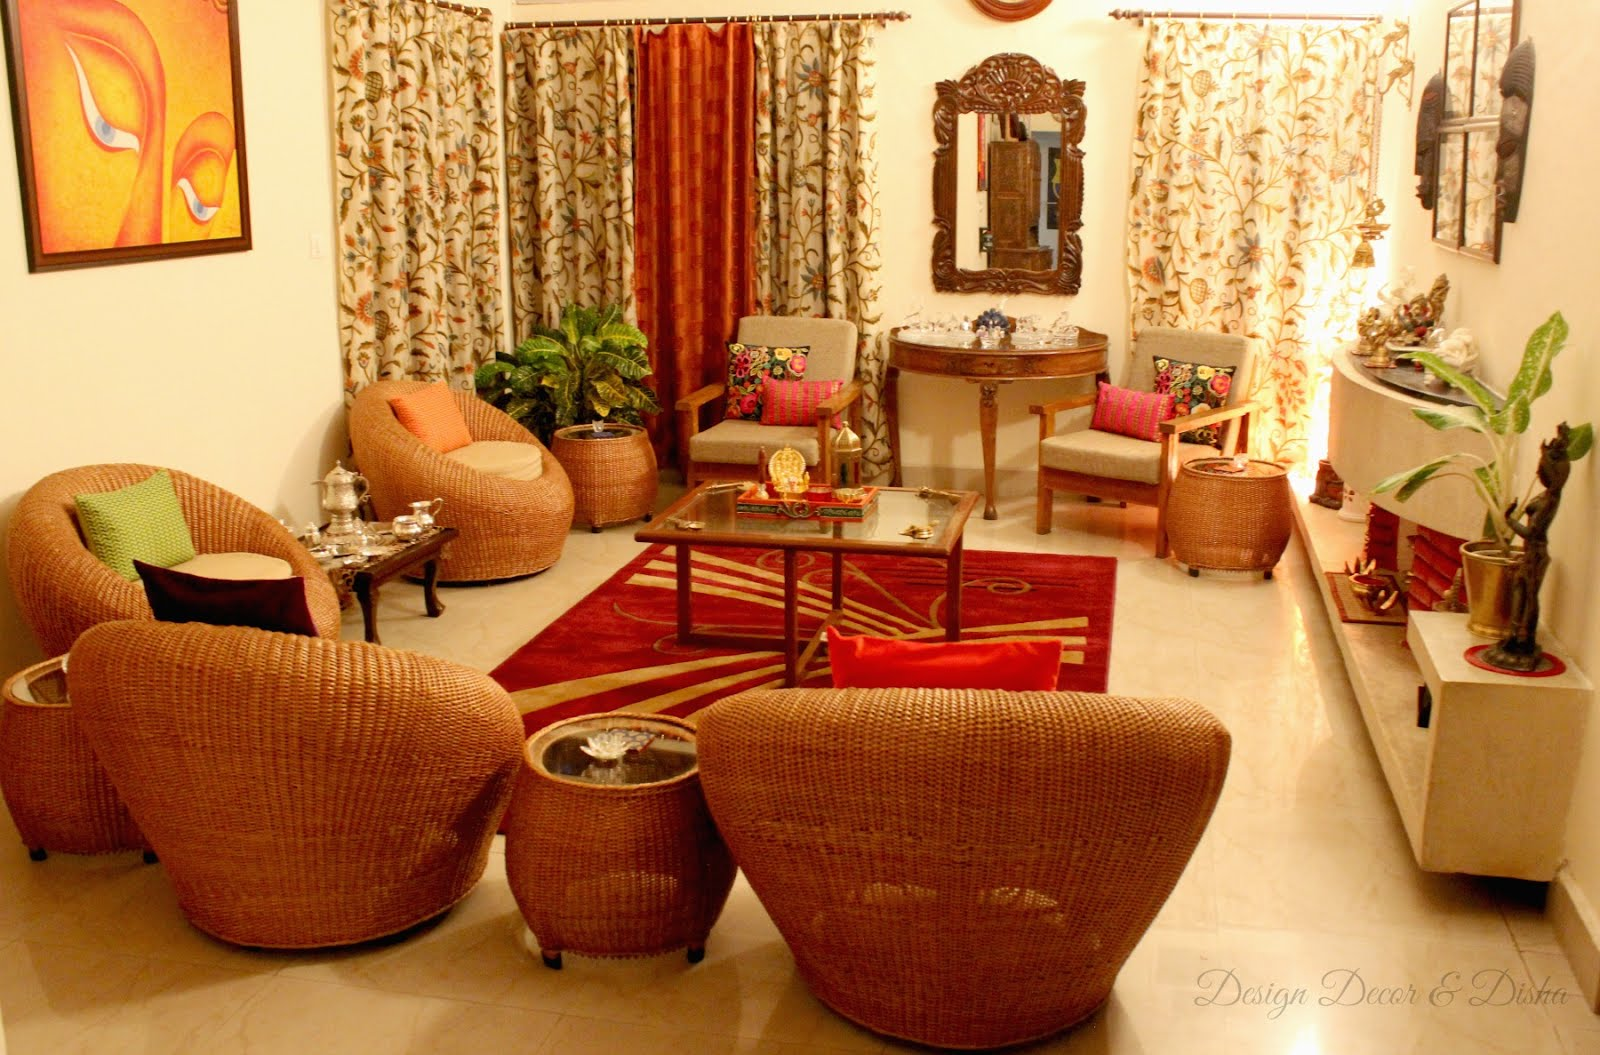 Design decor disha an indian design decor blog home for Indian house decor